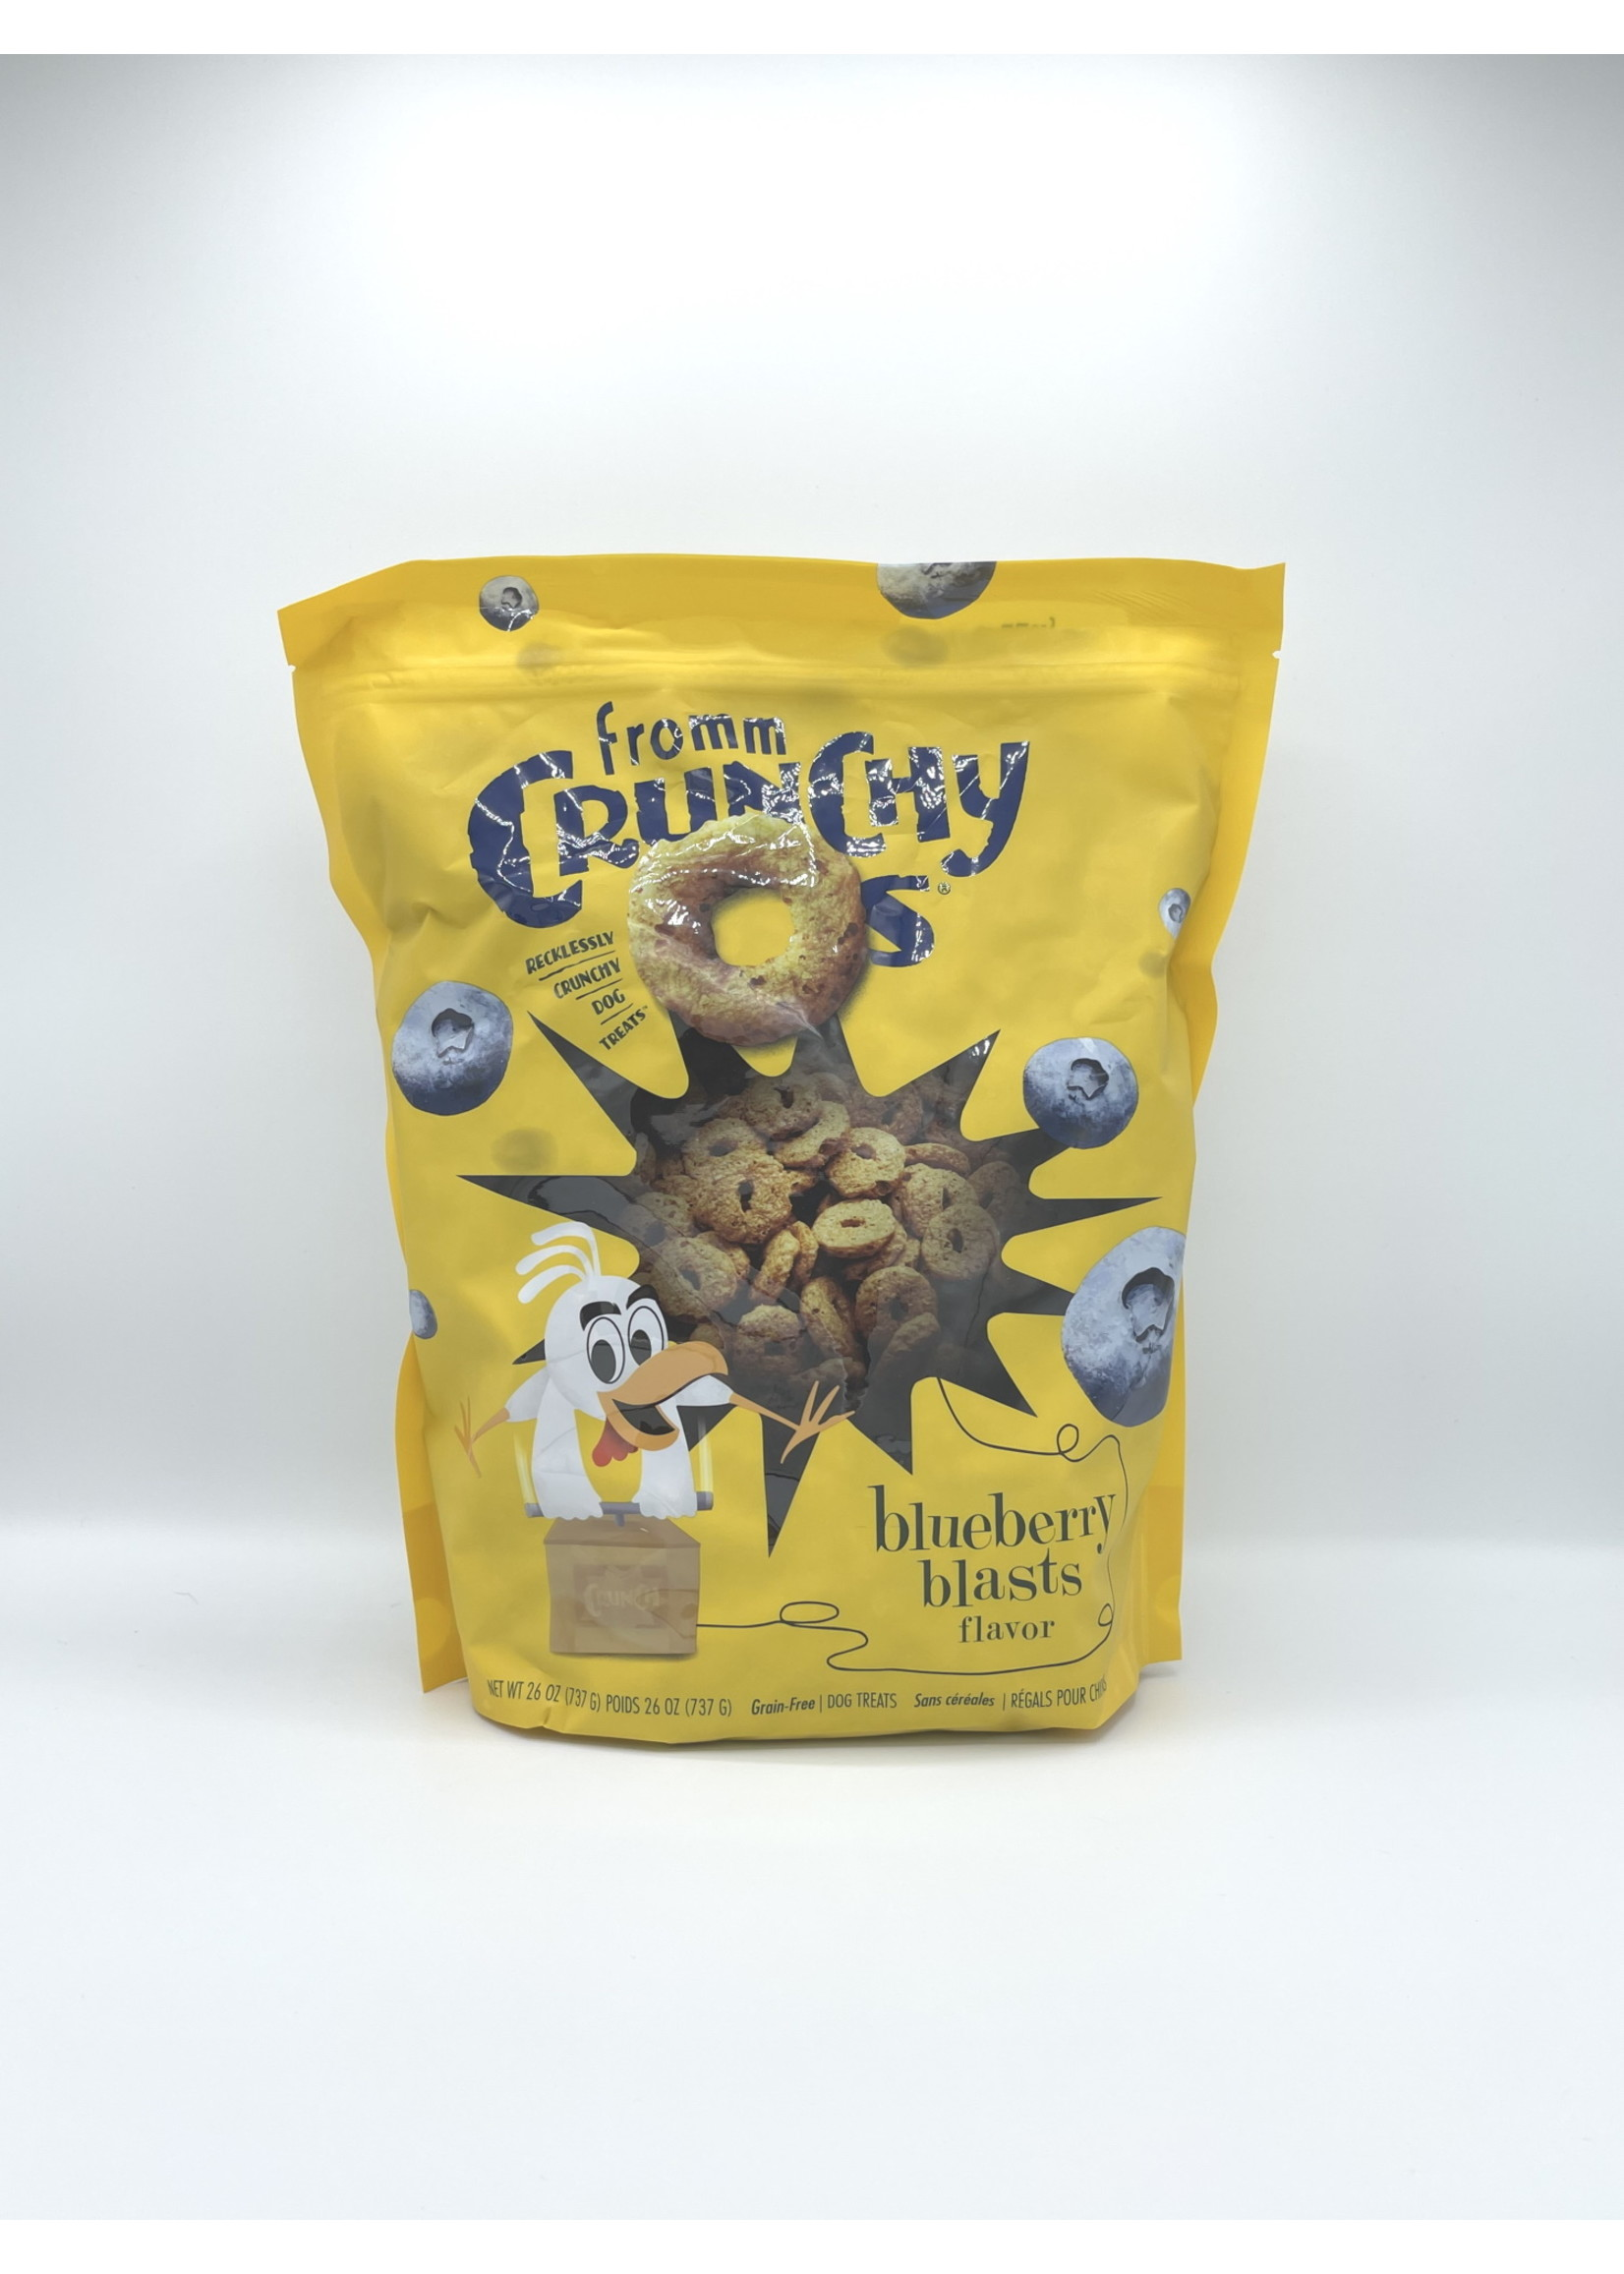 Fromm Fromm Crunchy O's Blueberry Blast, 26oz Bag